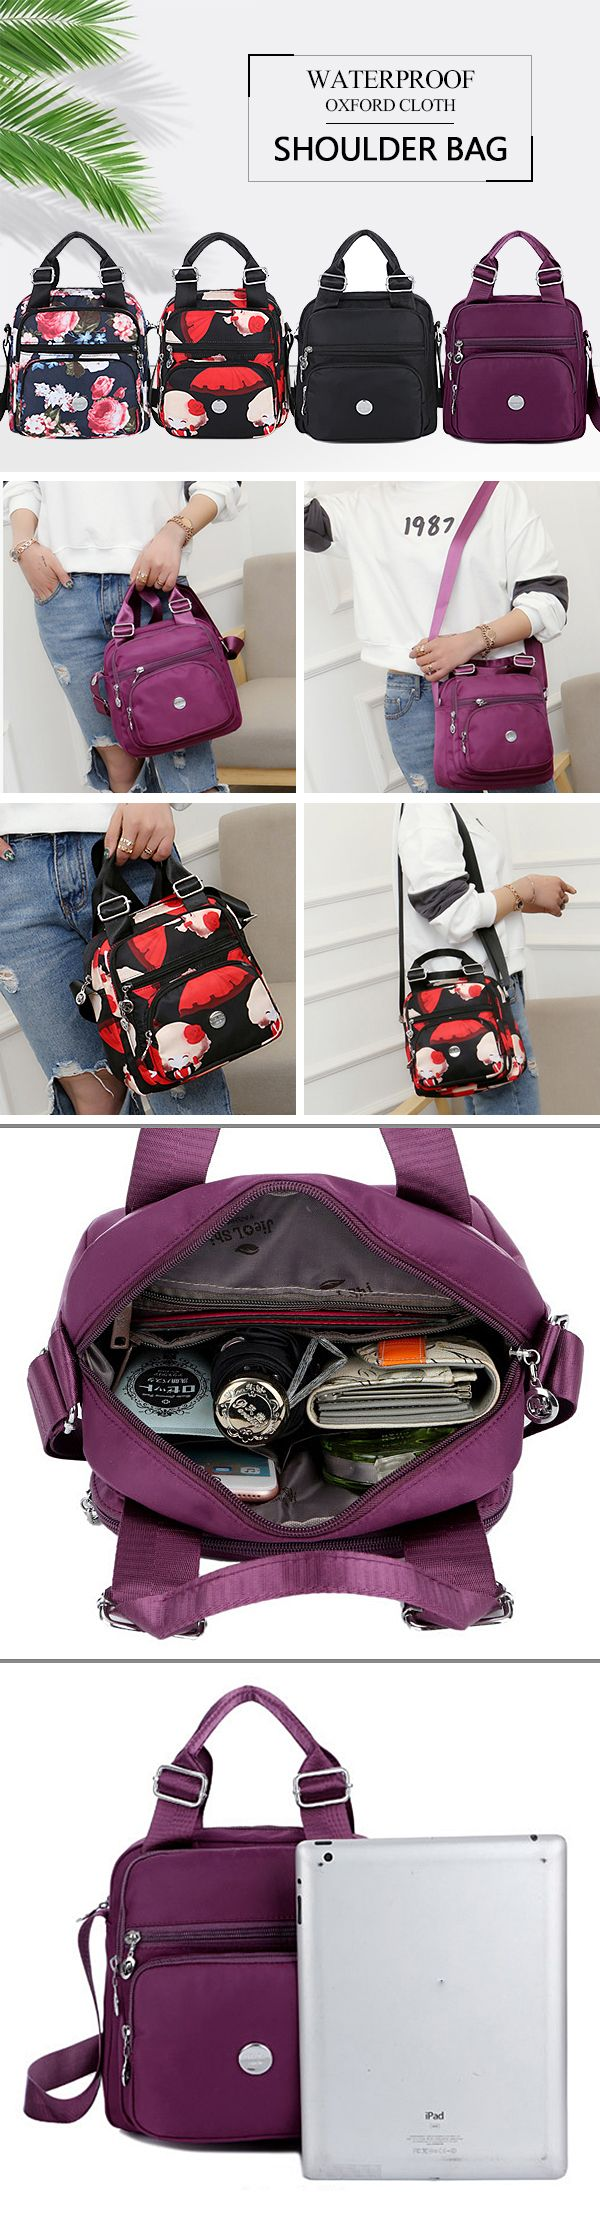 [$ 17.79]  Waterproof Oxford Cloth Women Handbag Crossbody Bag Shoulder Bag